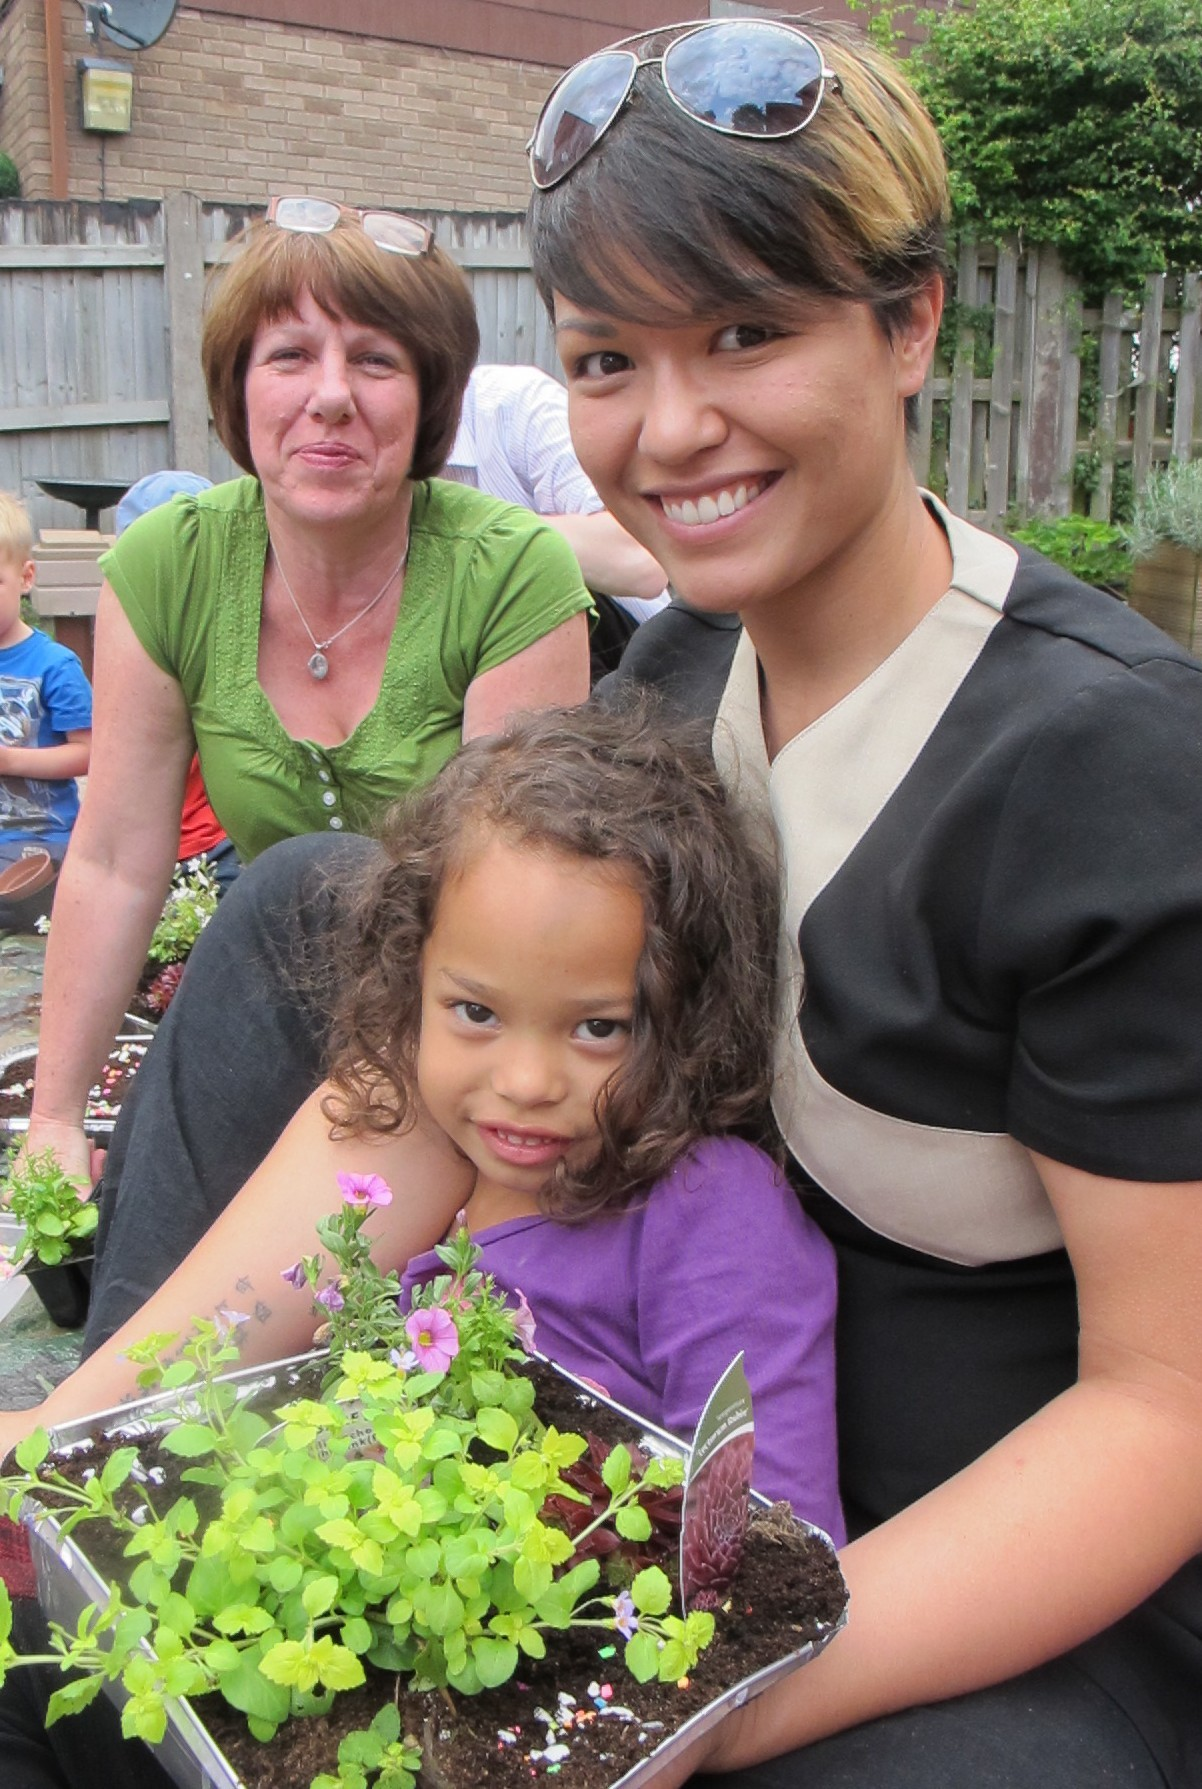 Joan Fuller, gardening club organiser, with Teah Chik-Bailey, aged four, and her mum Tamsin. SP